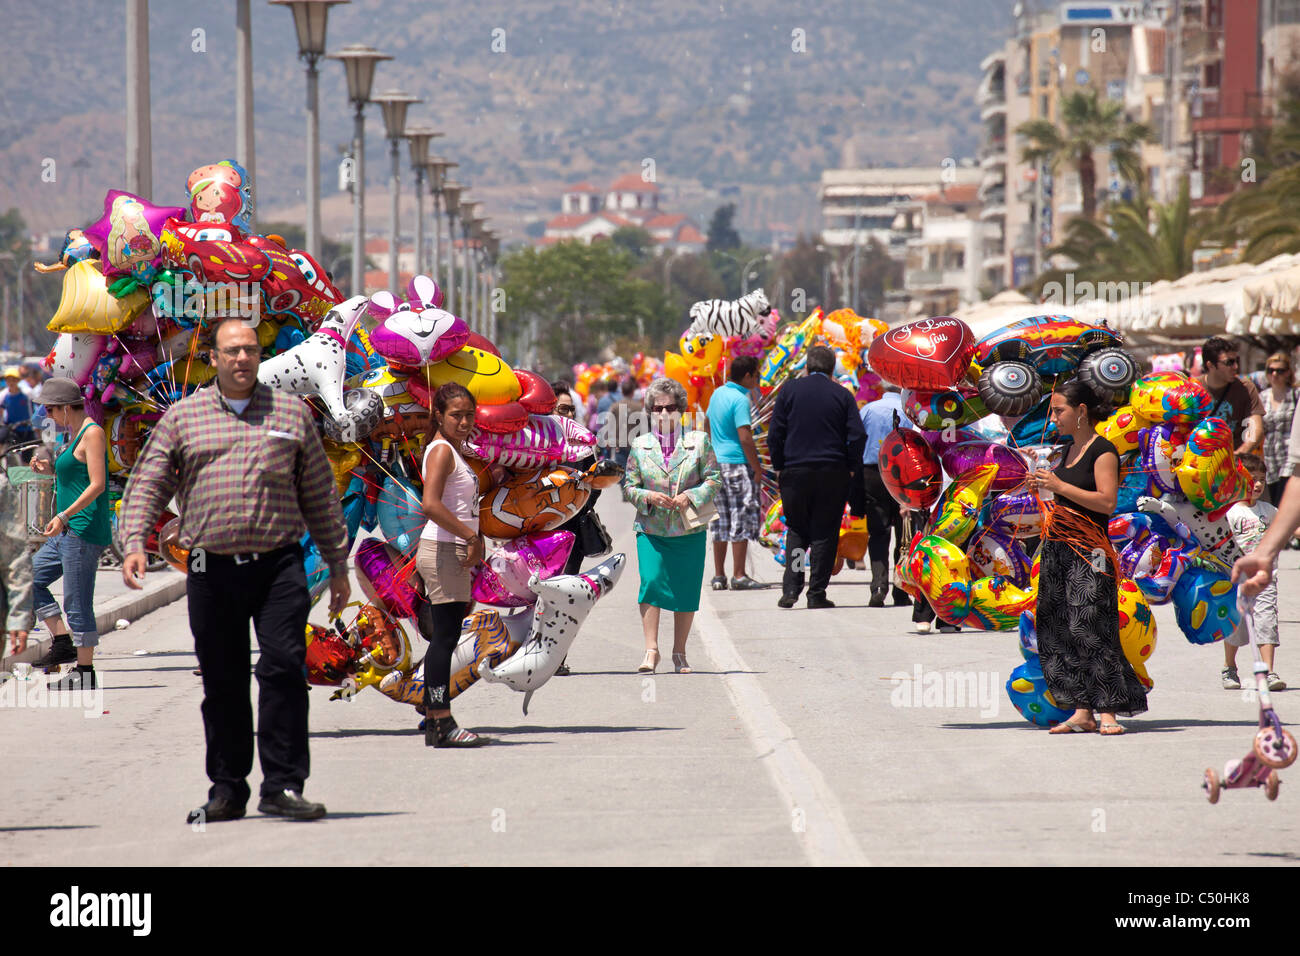 balloon vendor on the harbour promenade of the coastal port city Volos, Thessaly, Greece - Stock Image